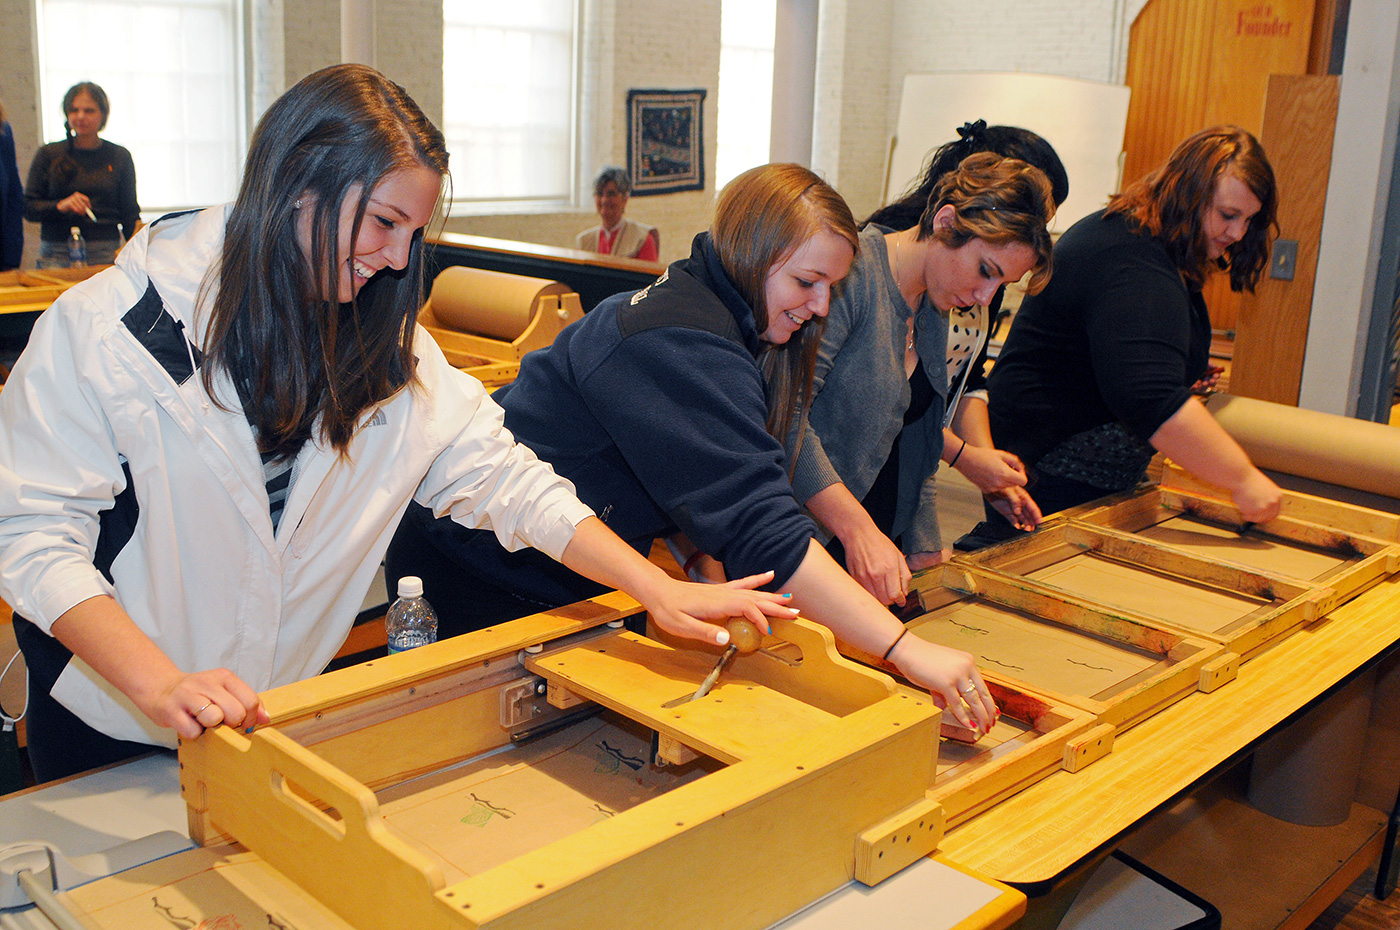 Smiling students use museum equipment to practice mass printing techniques